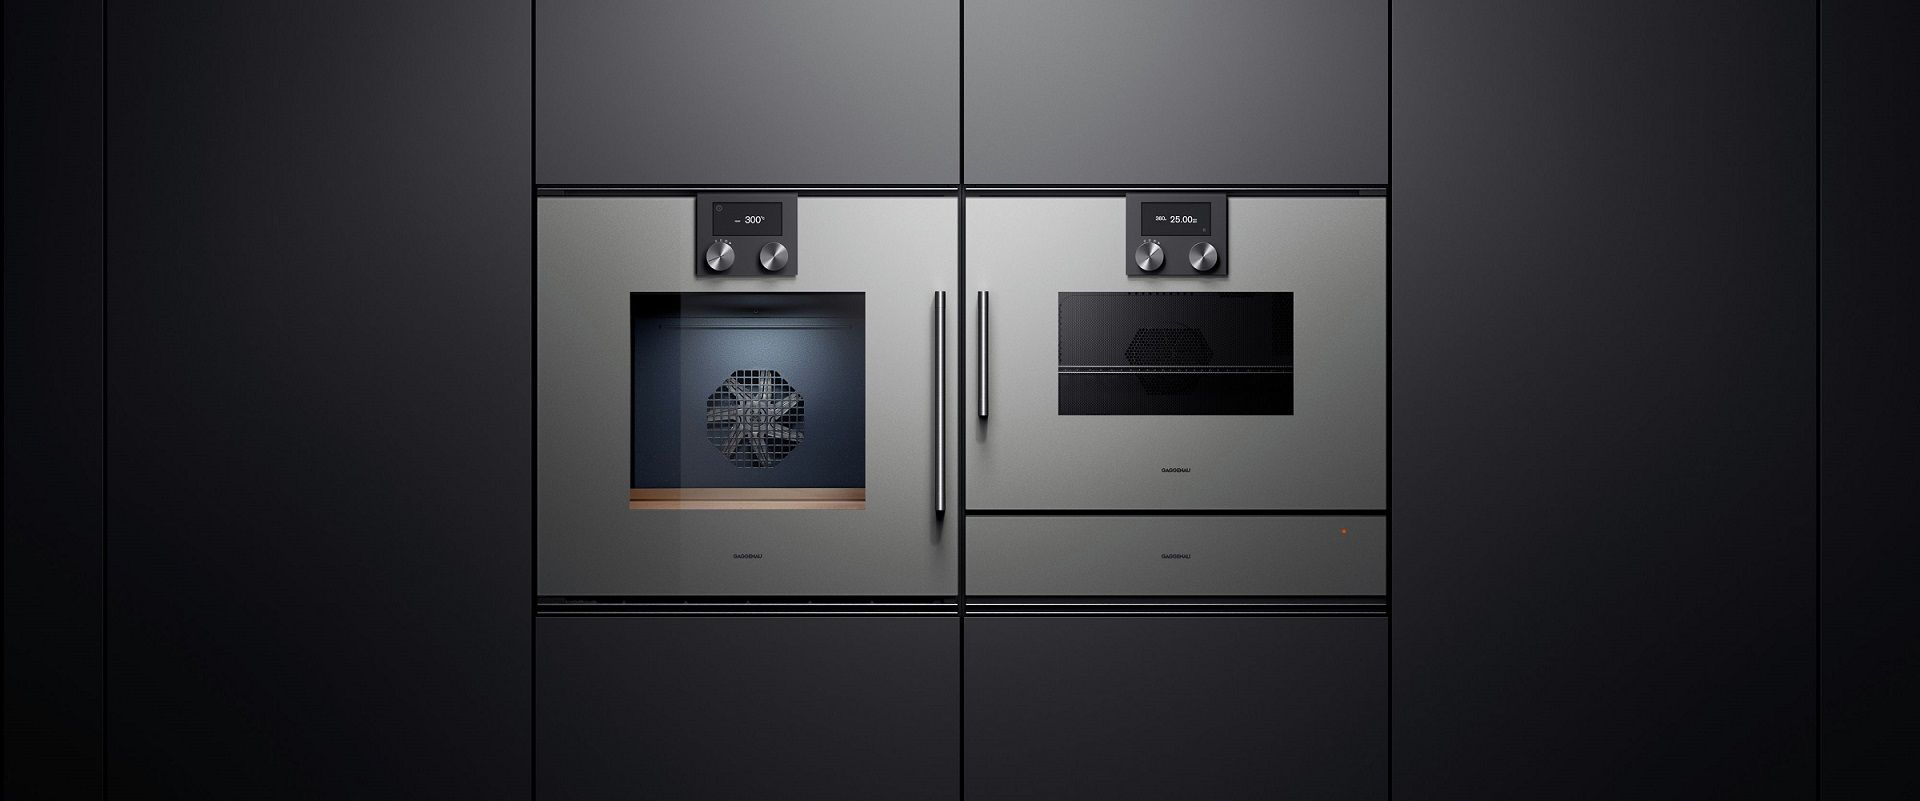 Gaggenau Steam Wall Ovens